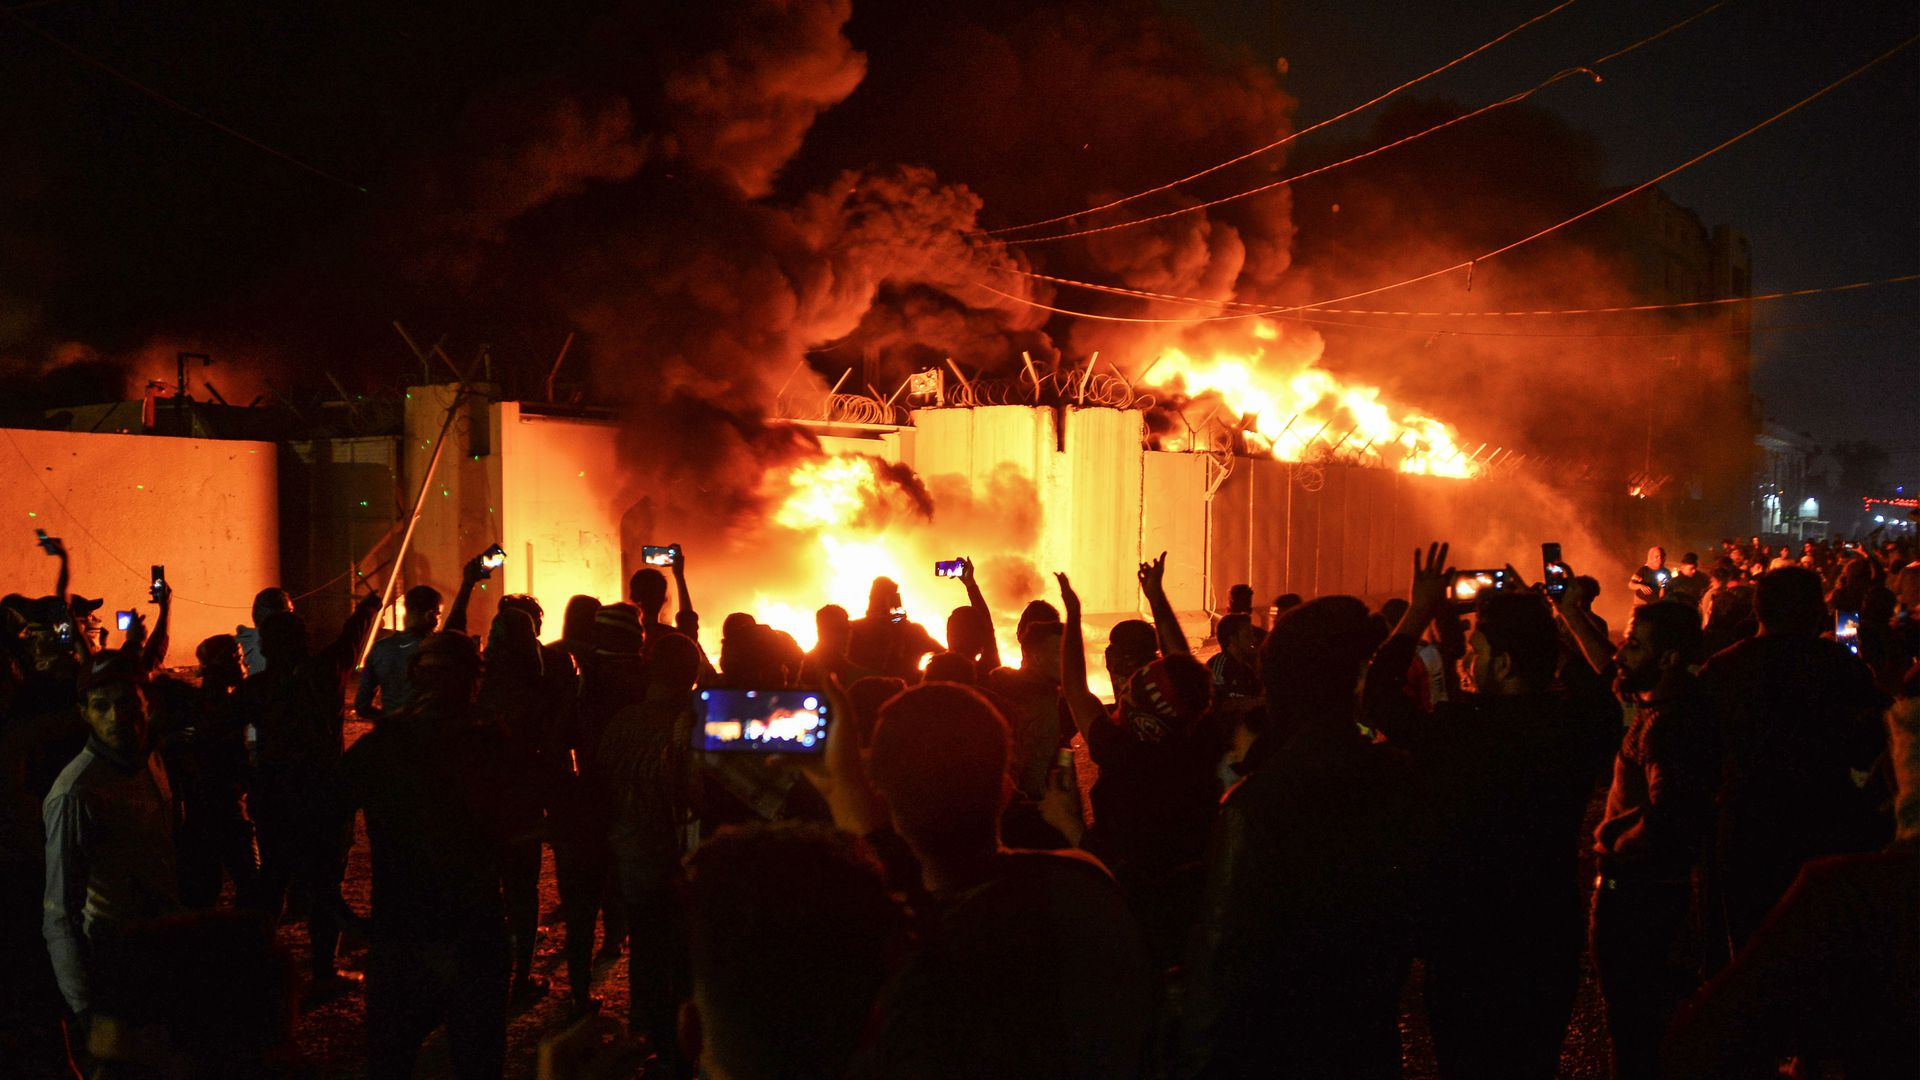 Iraqi demonstrators gather as flames start consuming Iran's consulate in the southern Iraqi Shiite holy city of Najaf